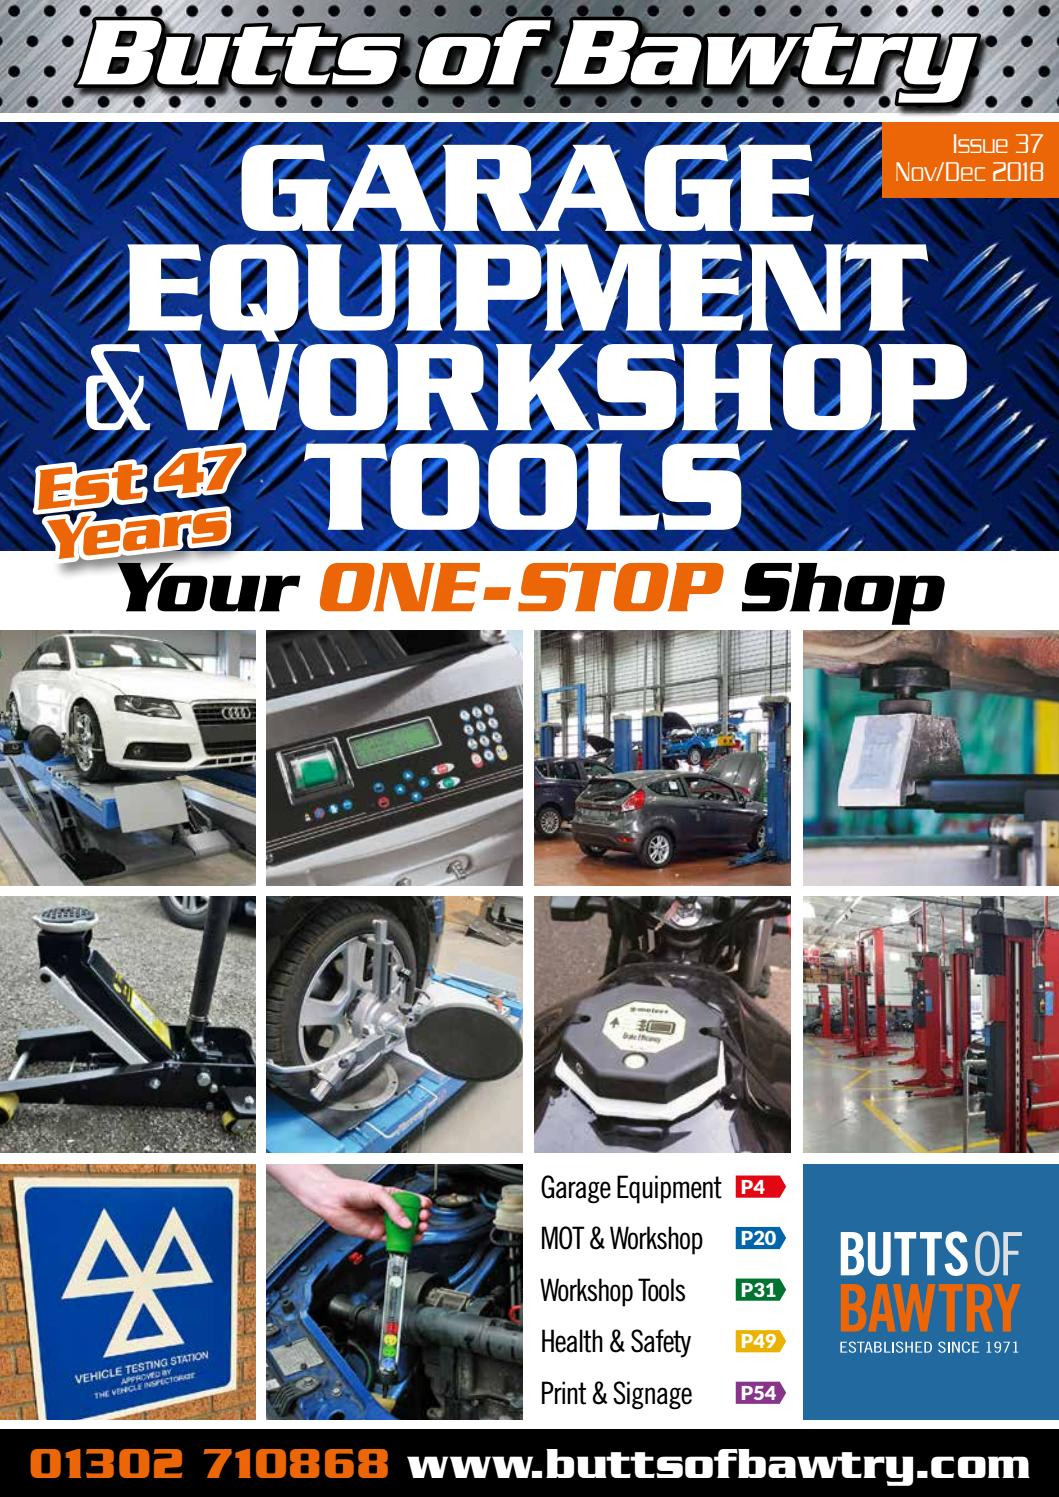 Garage Equipment & Workshop Tools by buttsofbawtry - Issuu